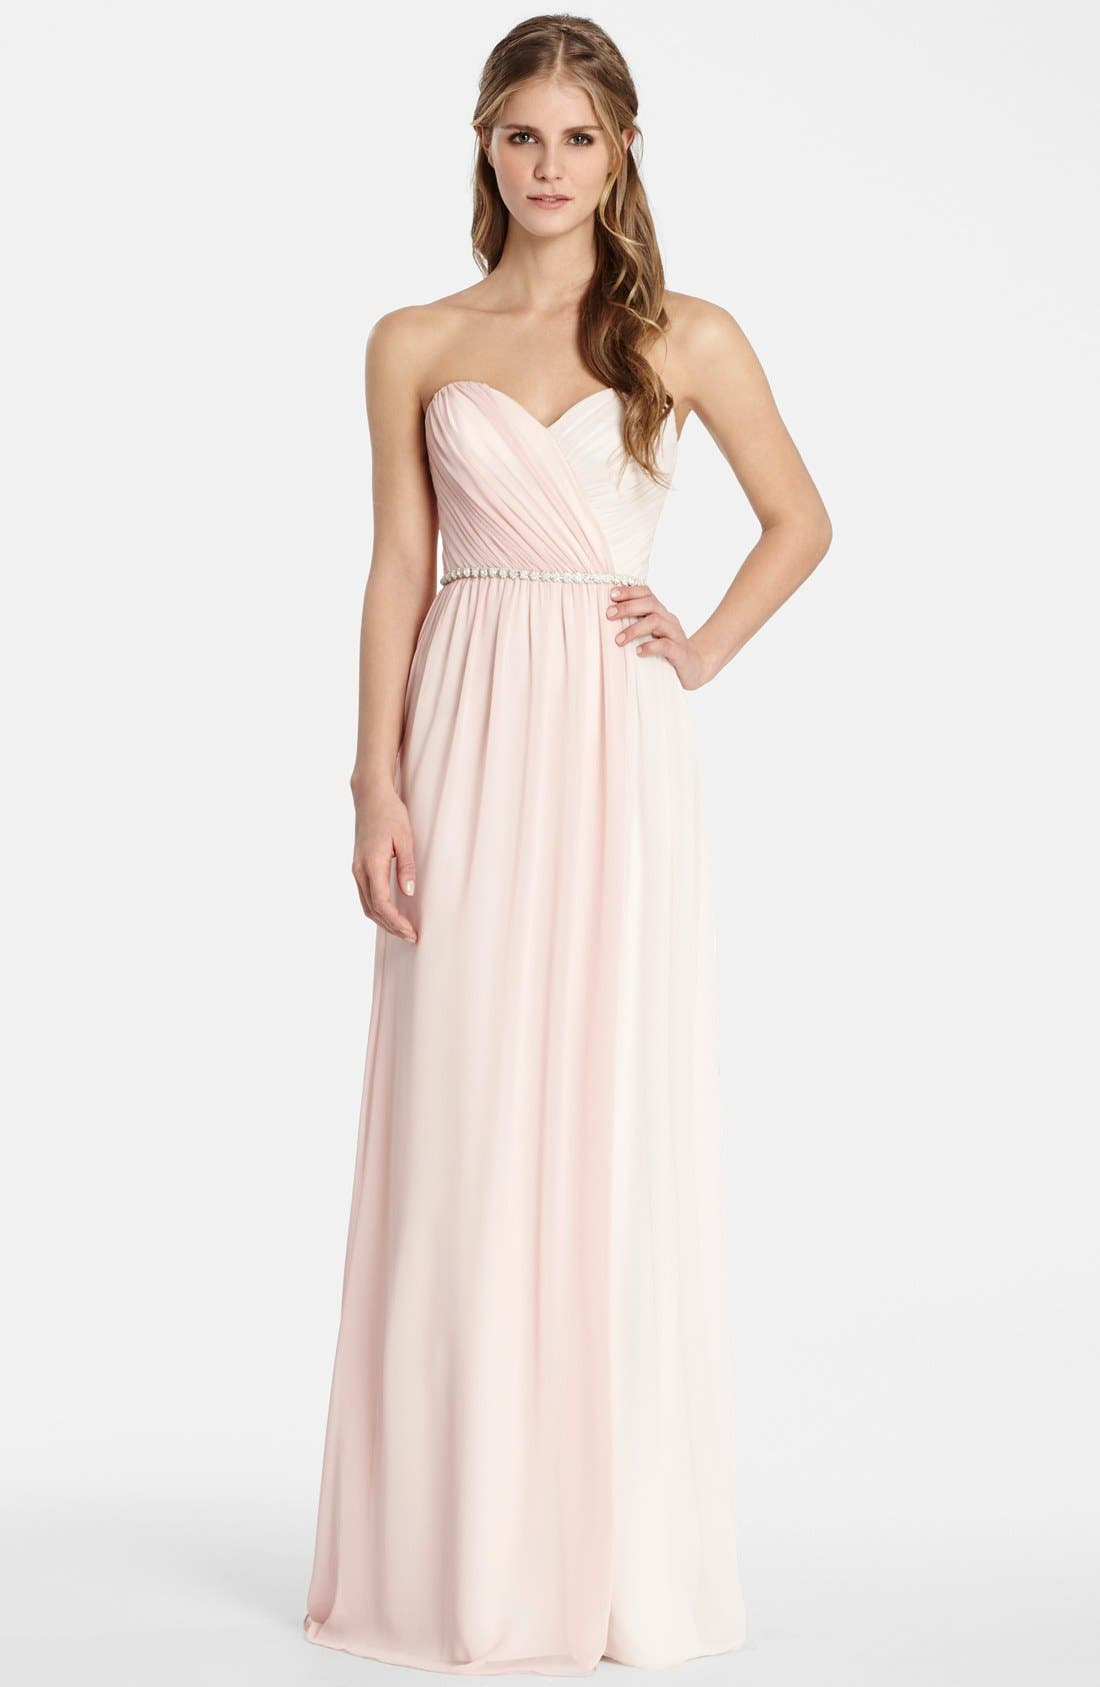 Alternate Image 1 Selected - Jim HjelmOccasions Two Tone Strapless Chiffon Gown